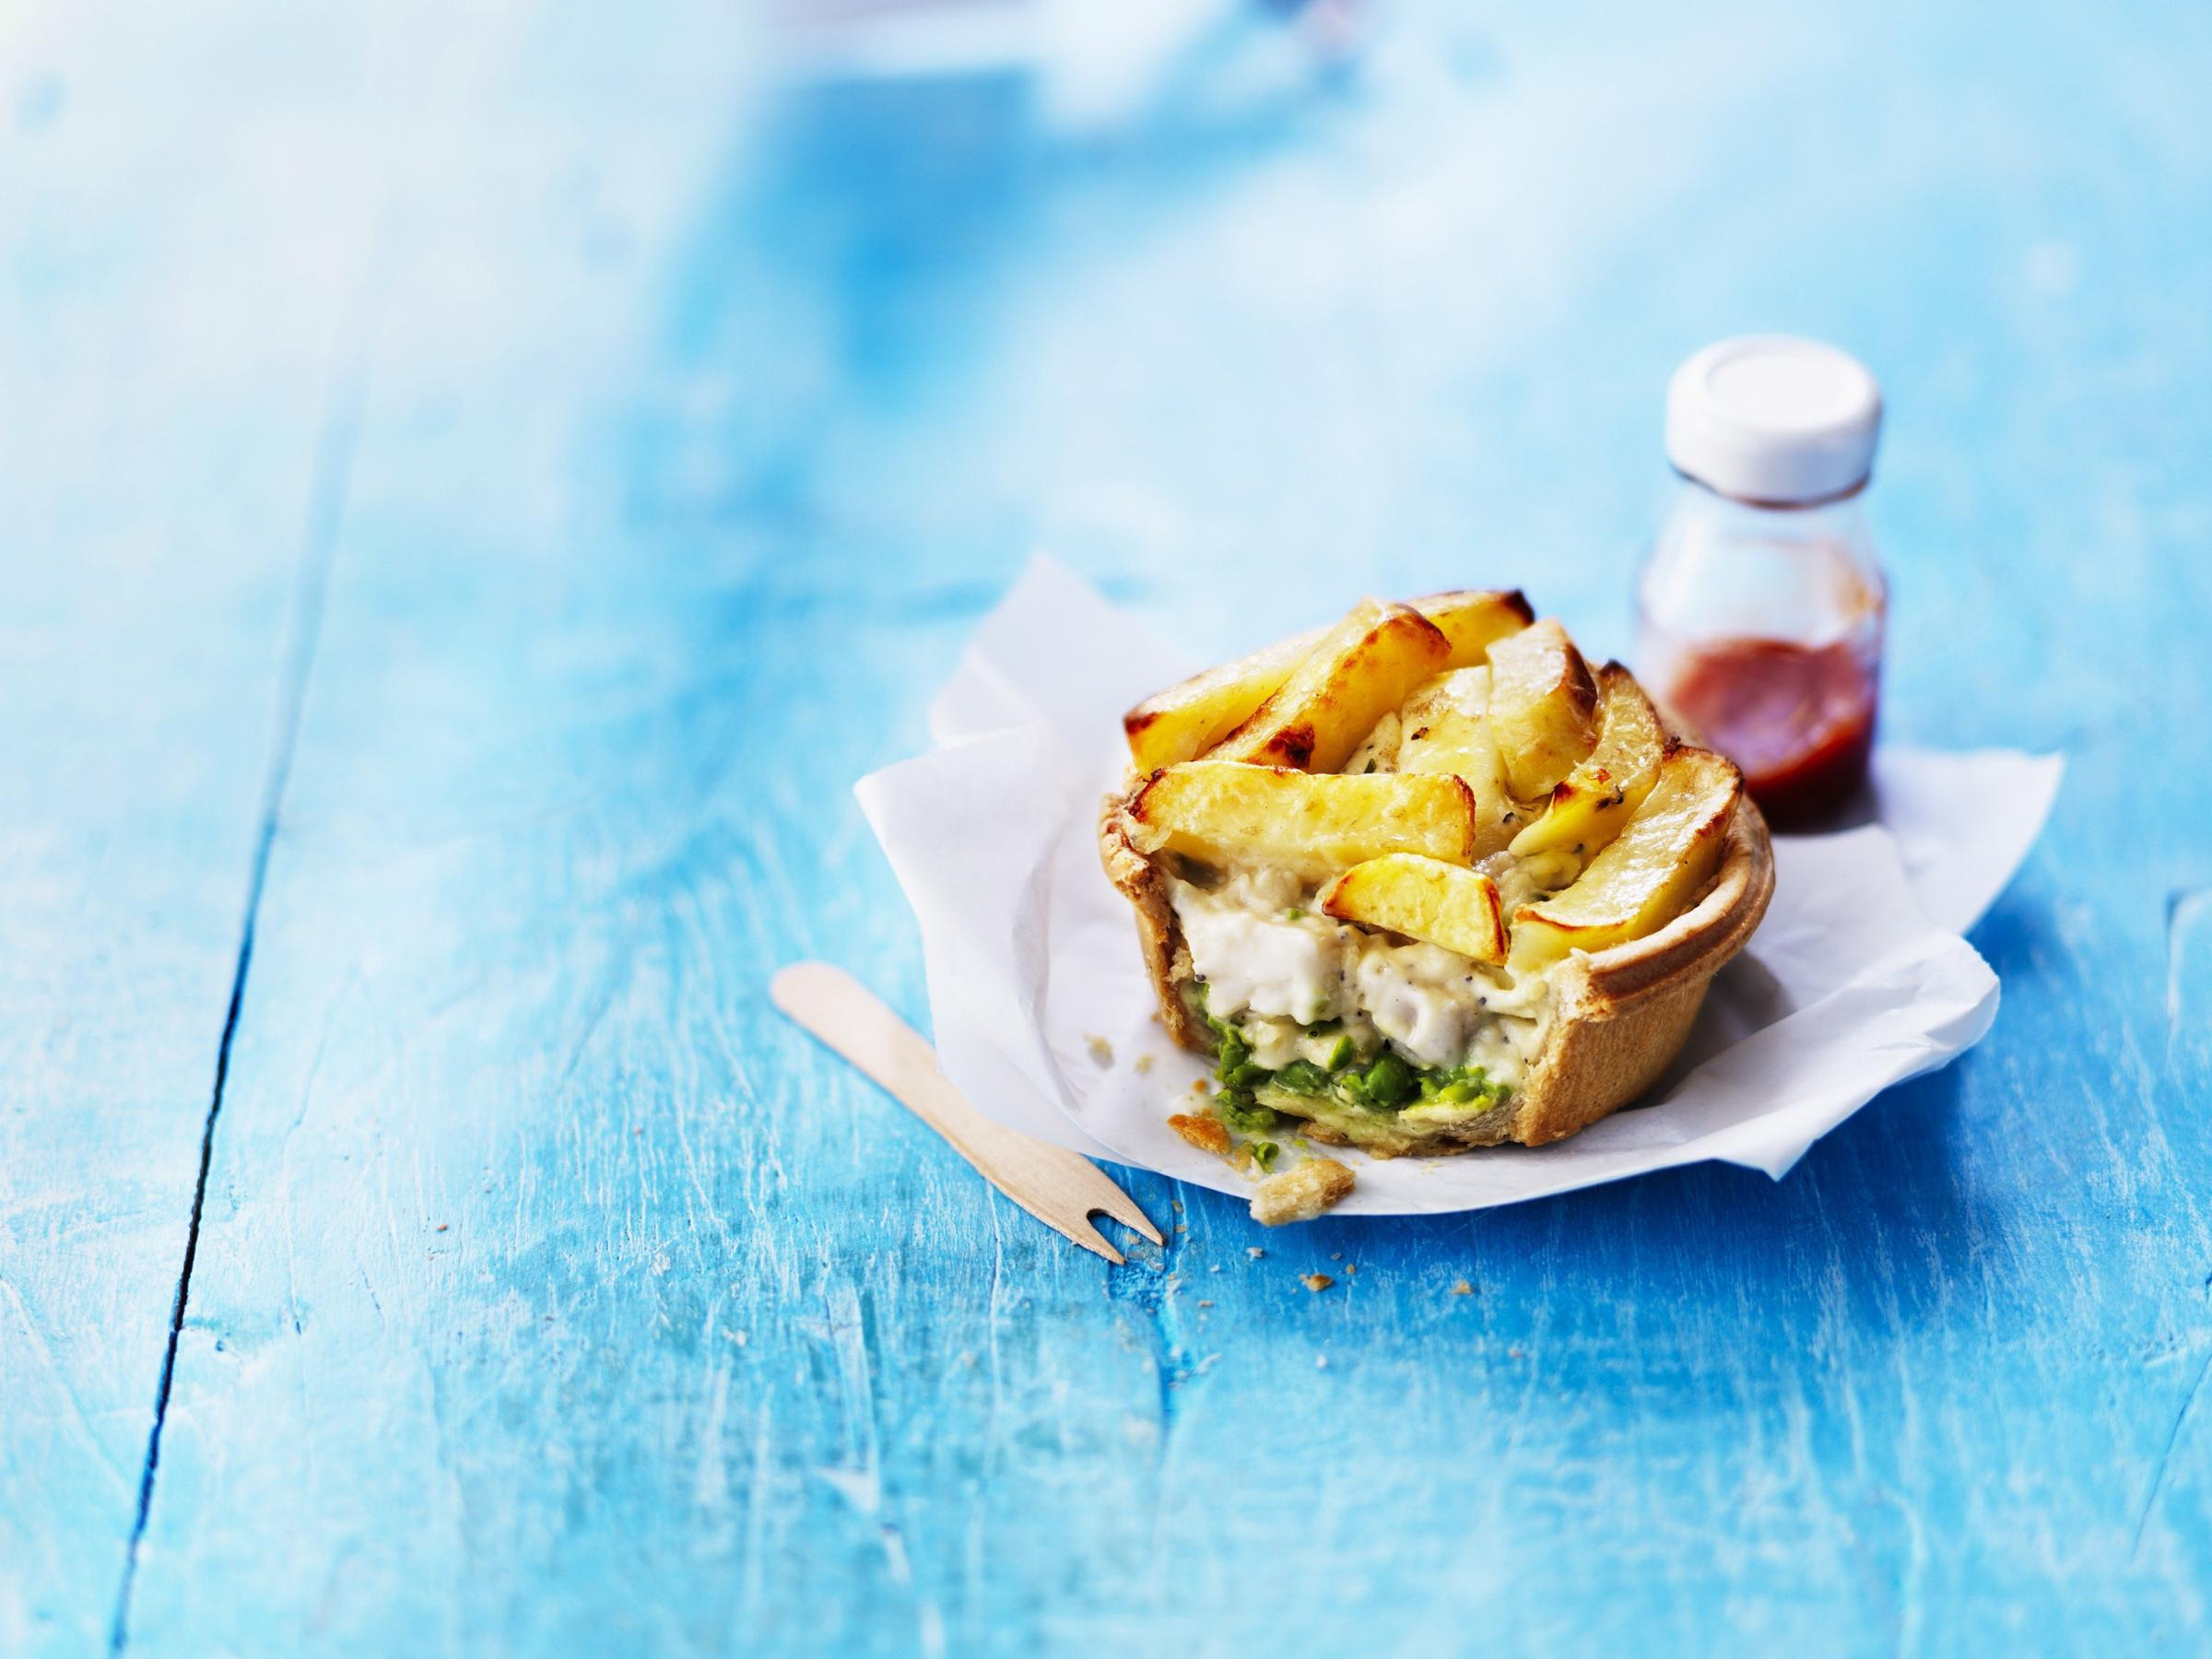 The fish and chip pie, which has chips instead of a pastry lid